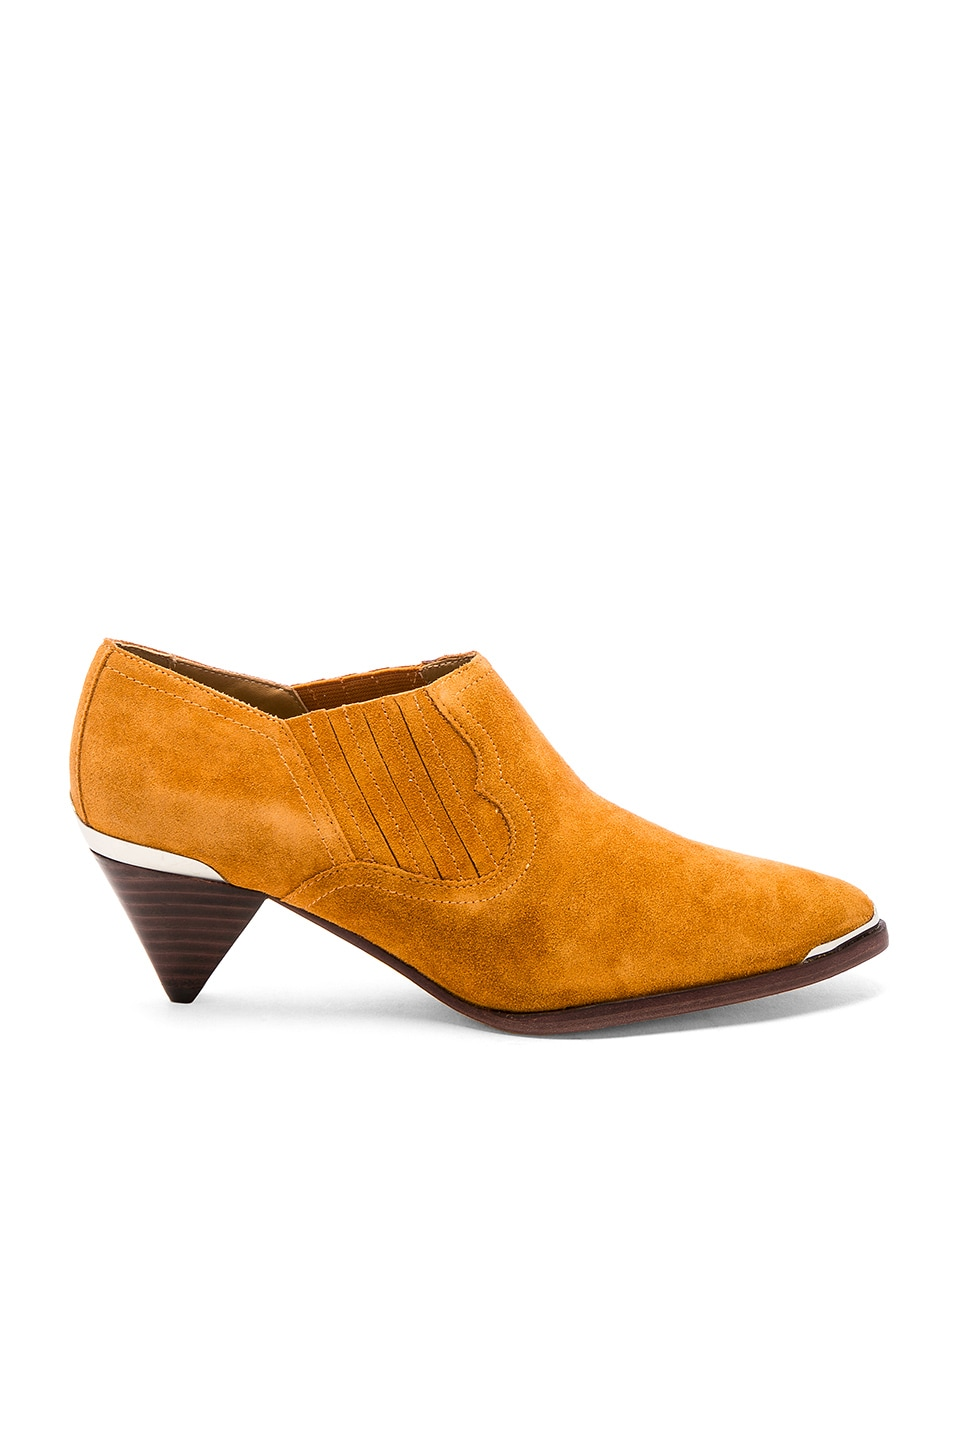 Joie Baler Bootie in Mustard Yellow